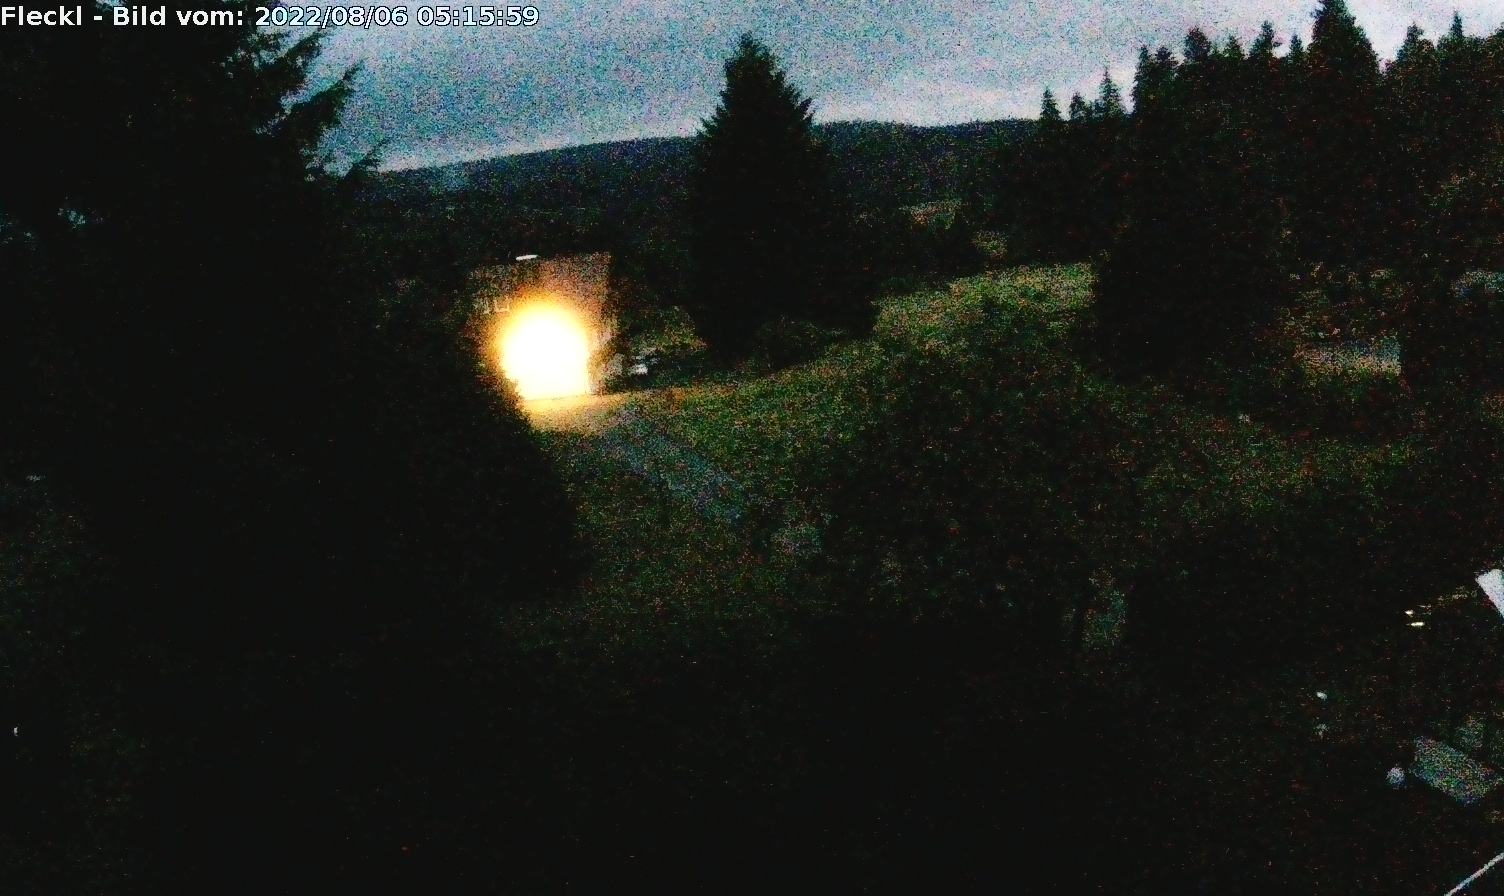 Webcam in Fleckl Fichtelgebirge Bayern